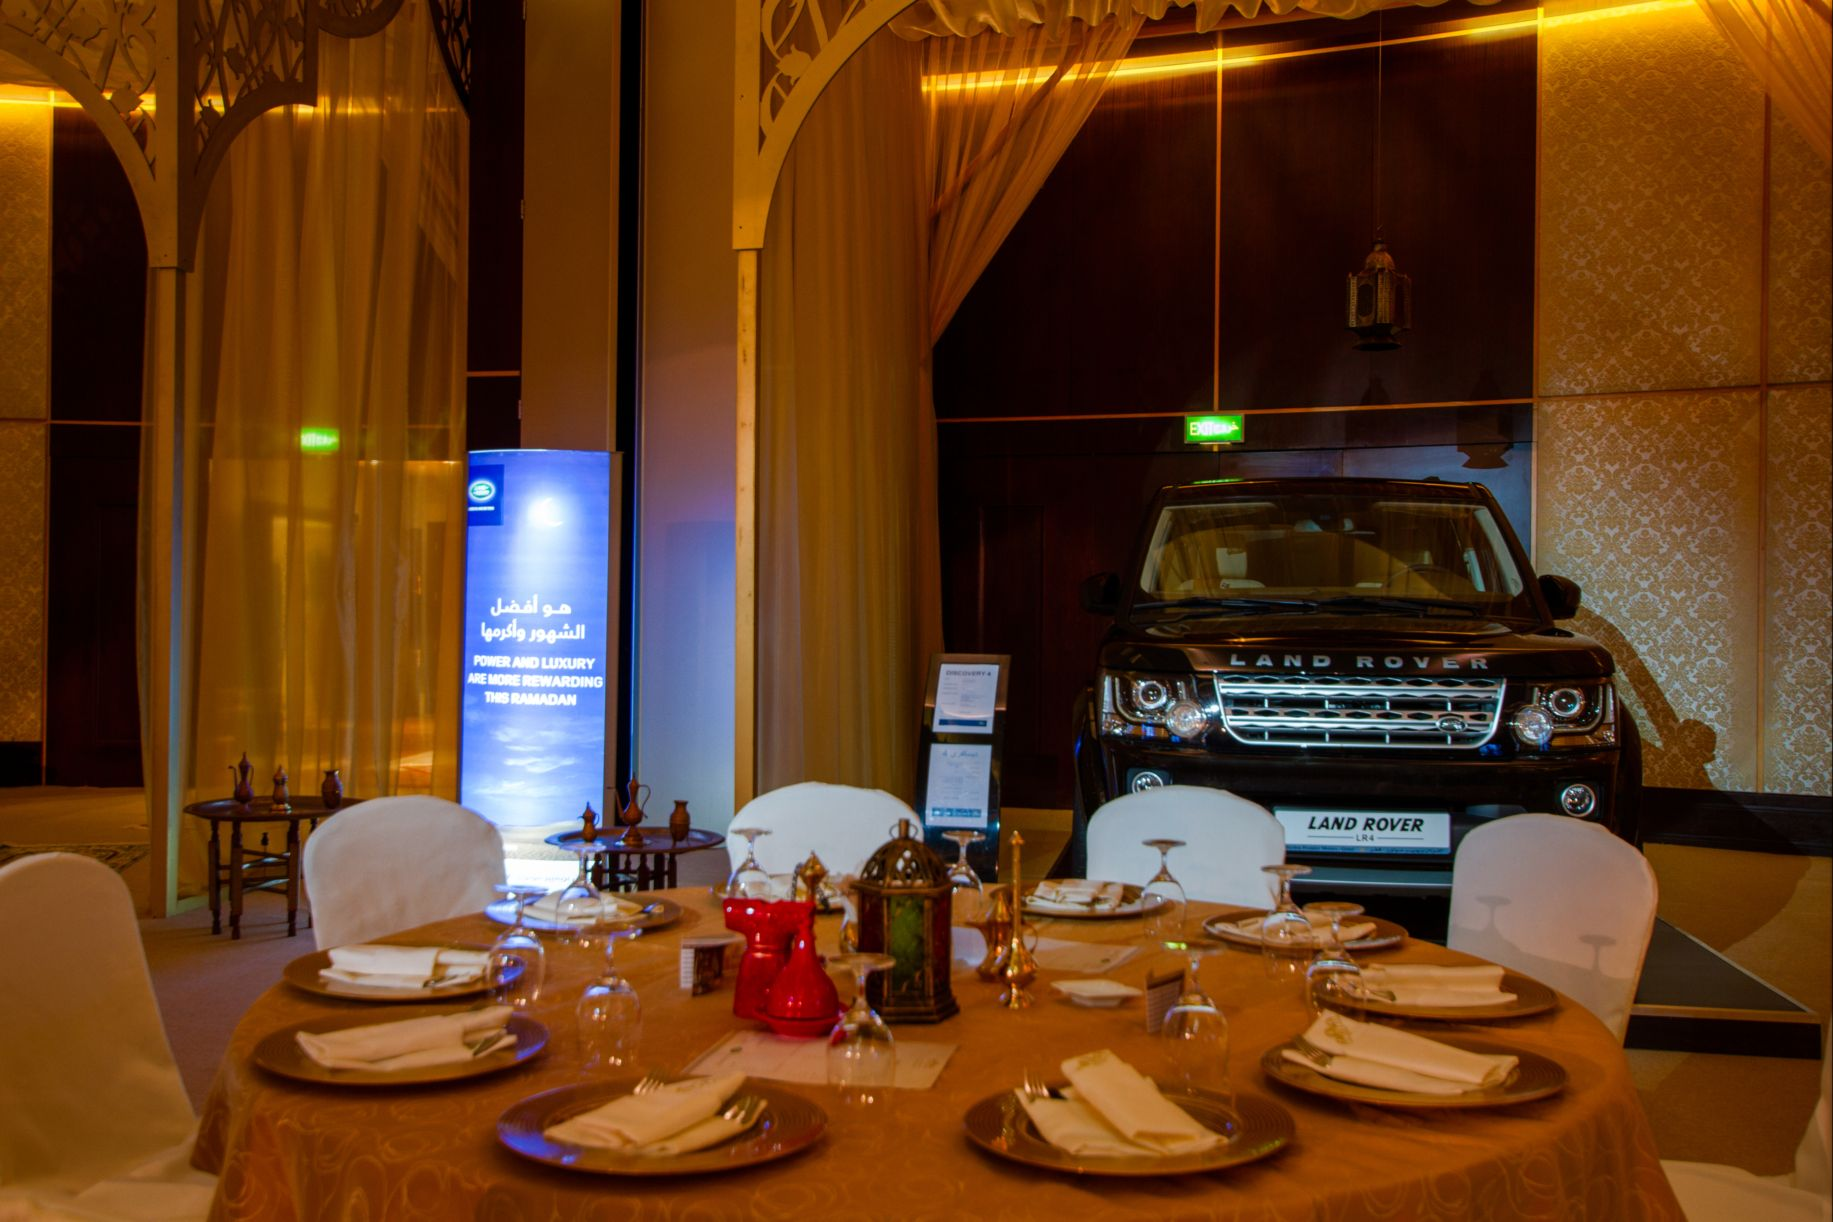 ramadan-display-st-regis-11-lr